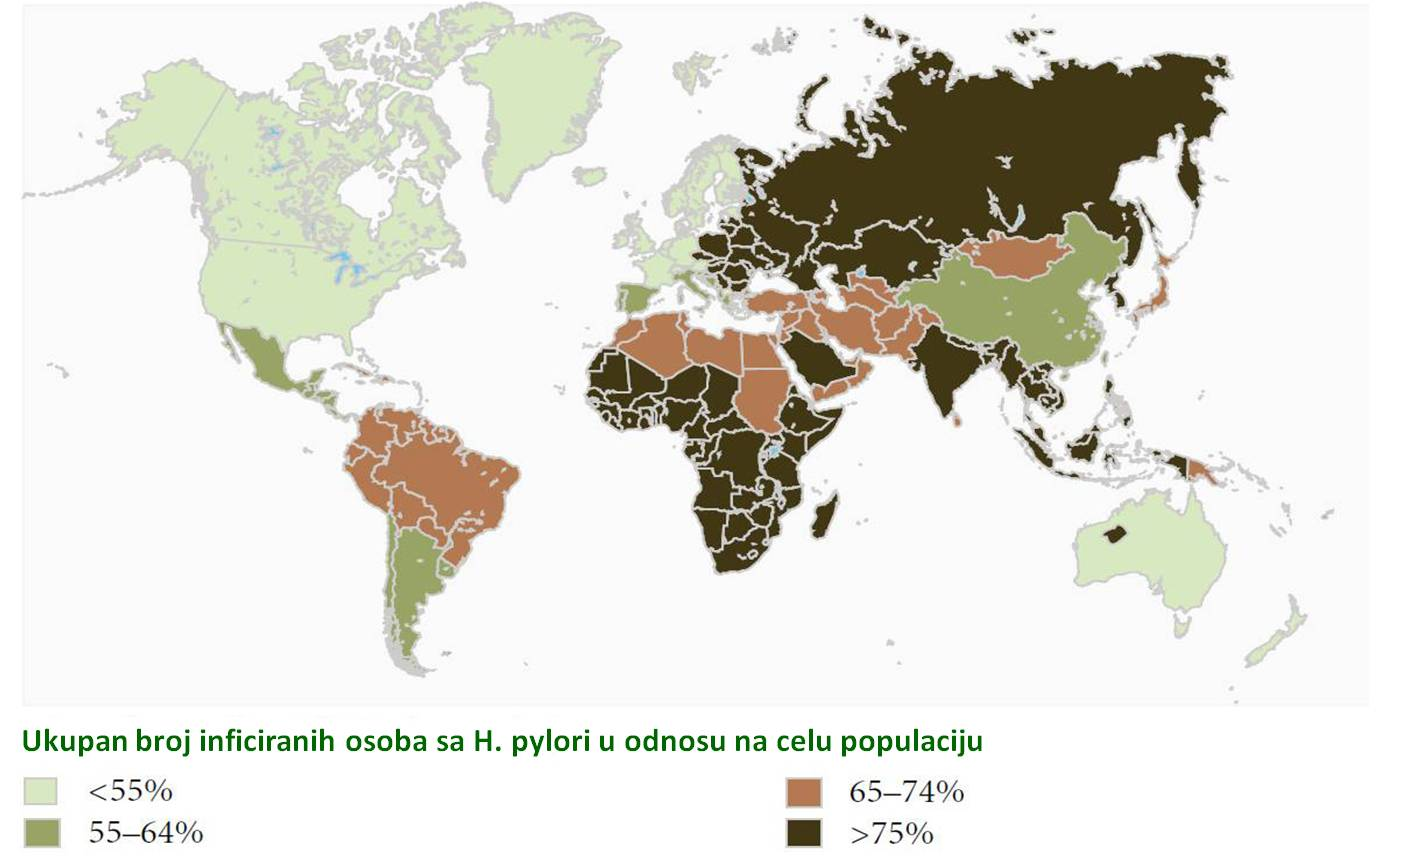 The prevalence of H. pylori world